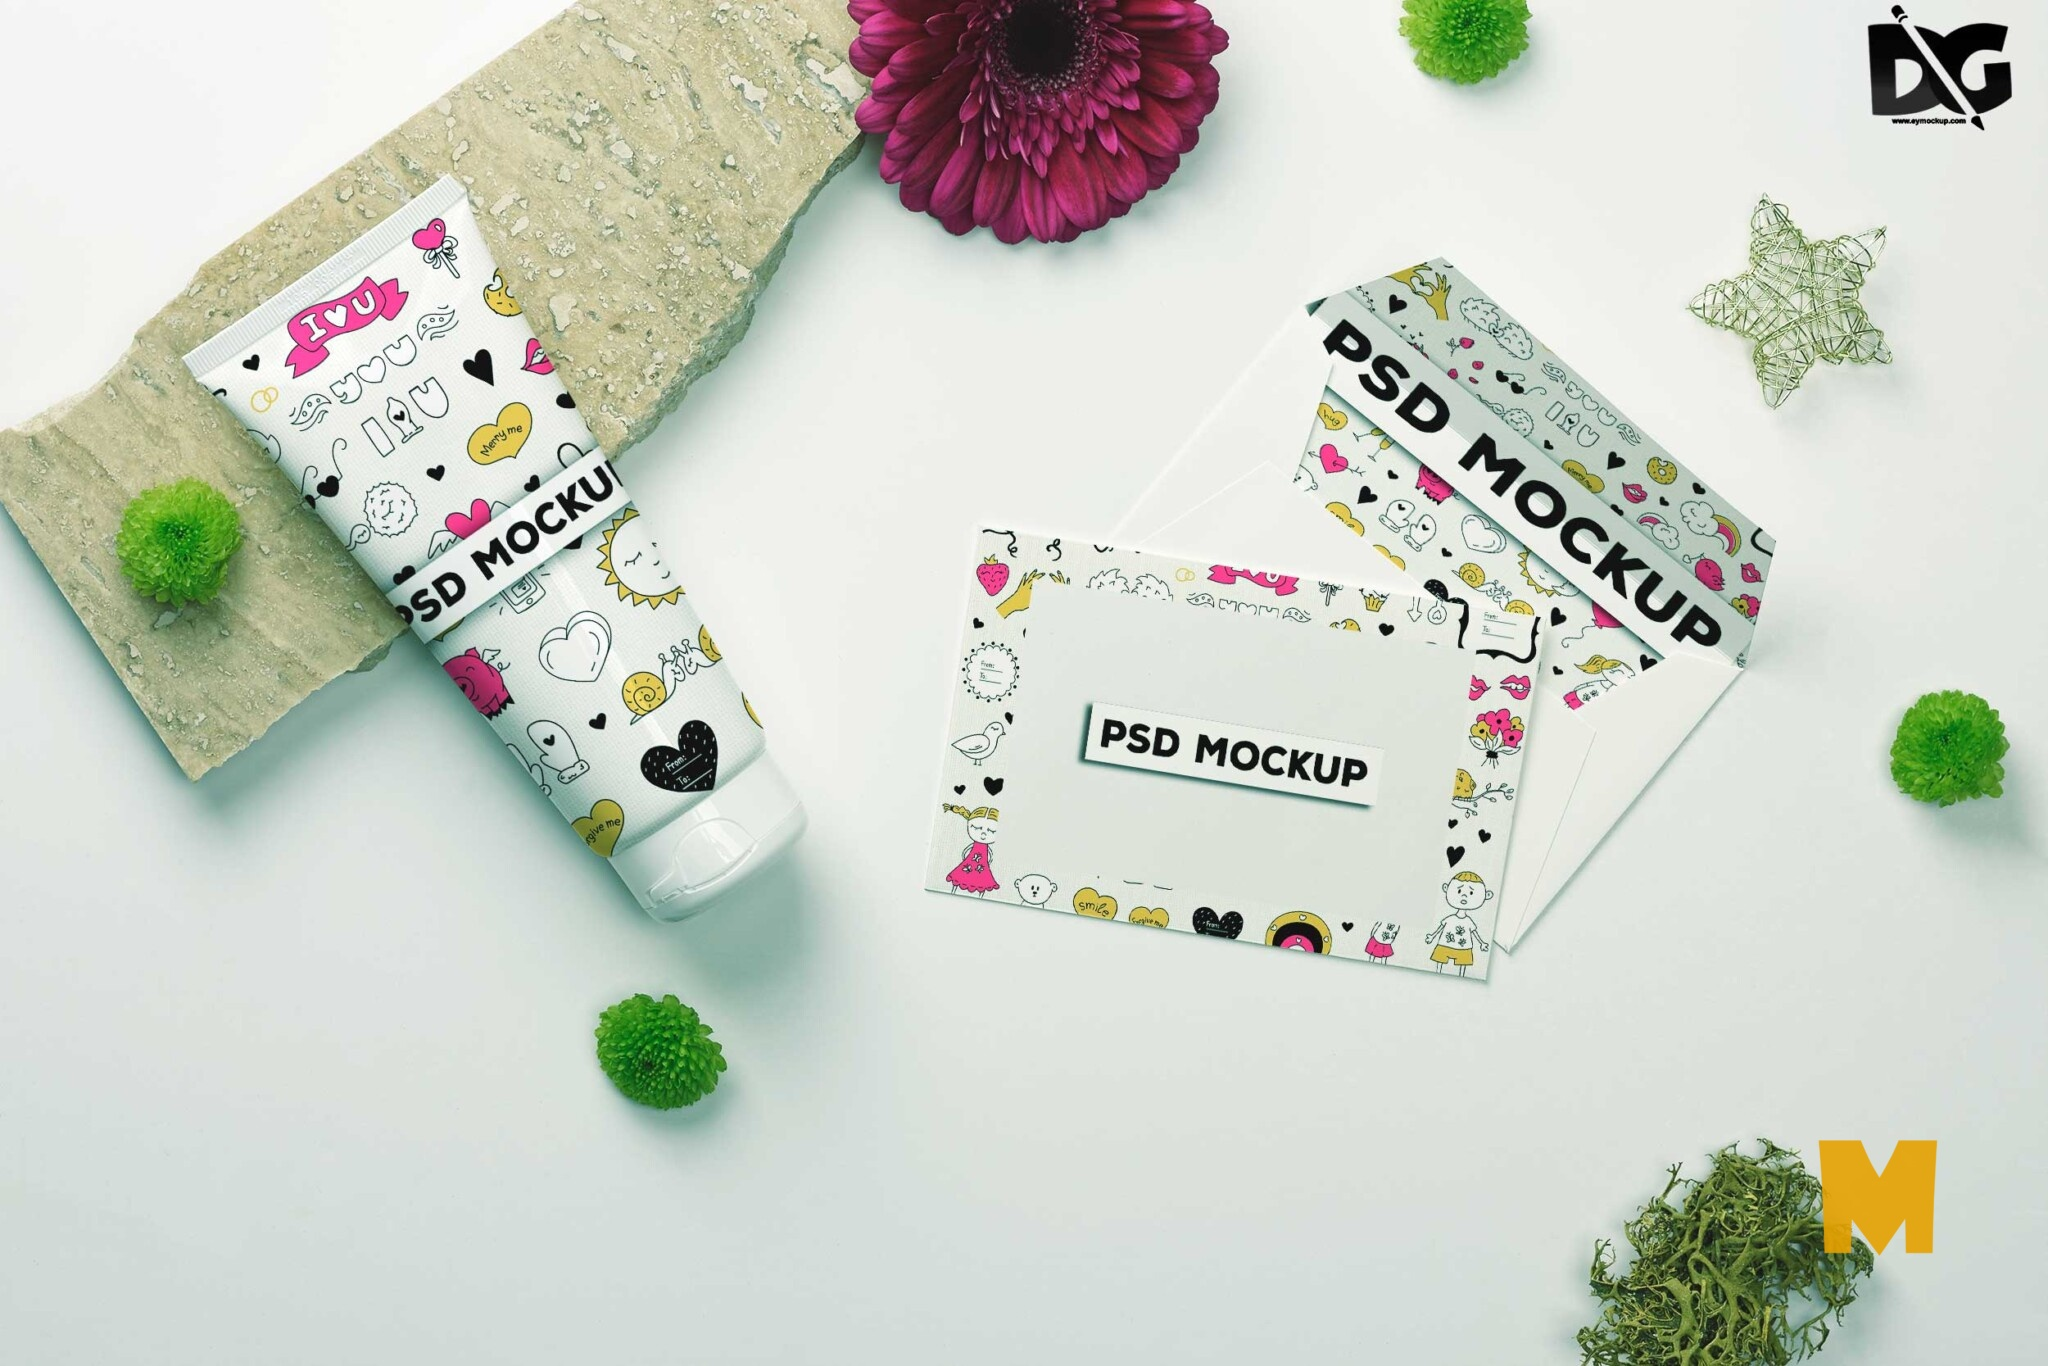 Free Handcream Postcard Mockup